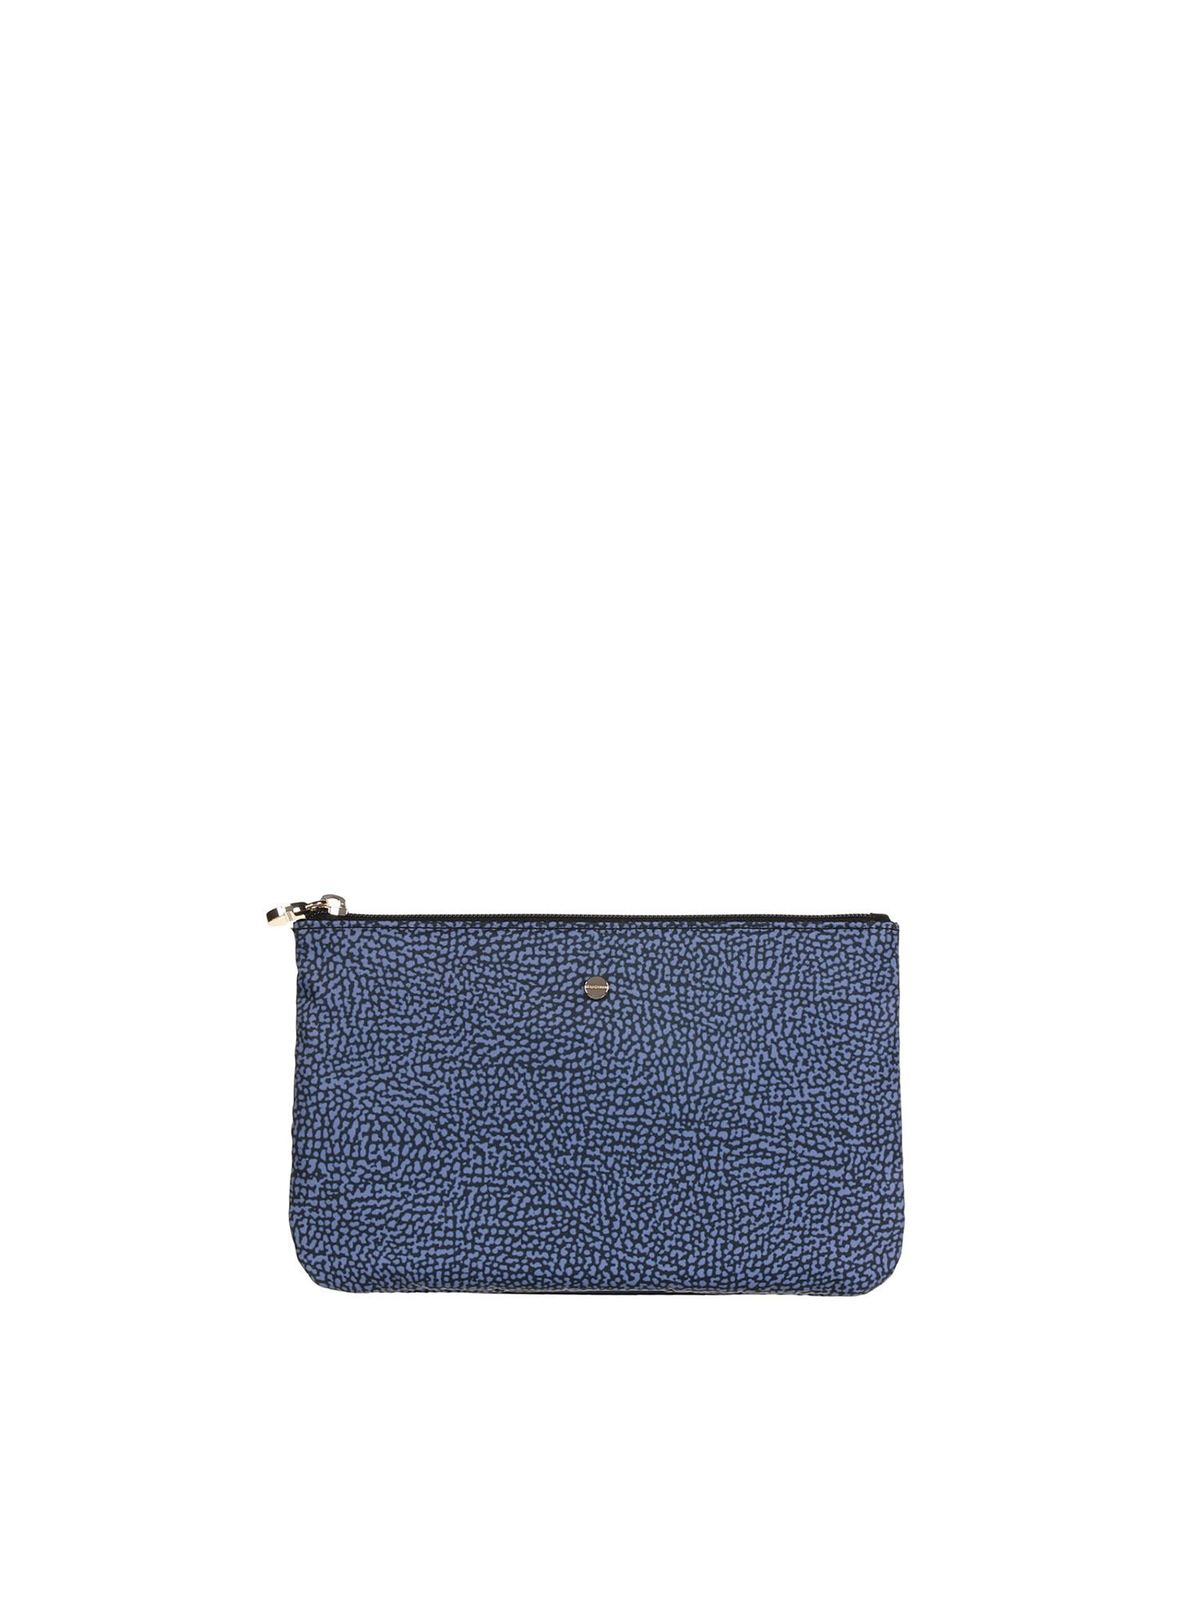 Borbonese OP POUCH IN BLUE